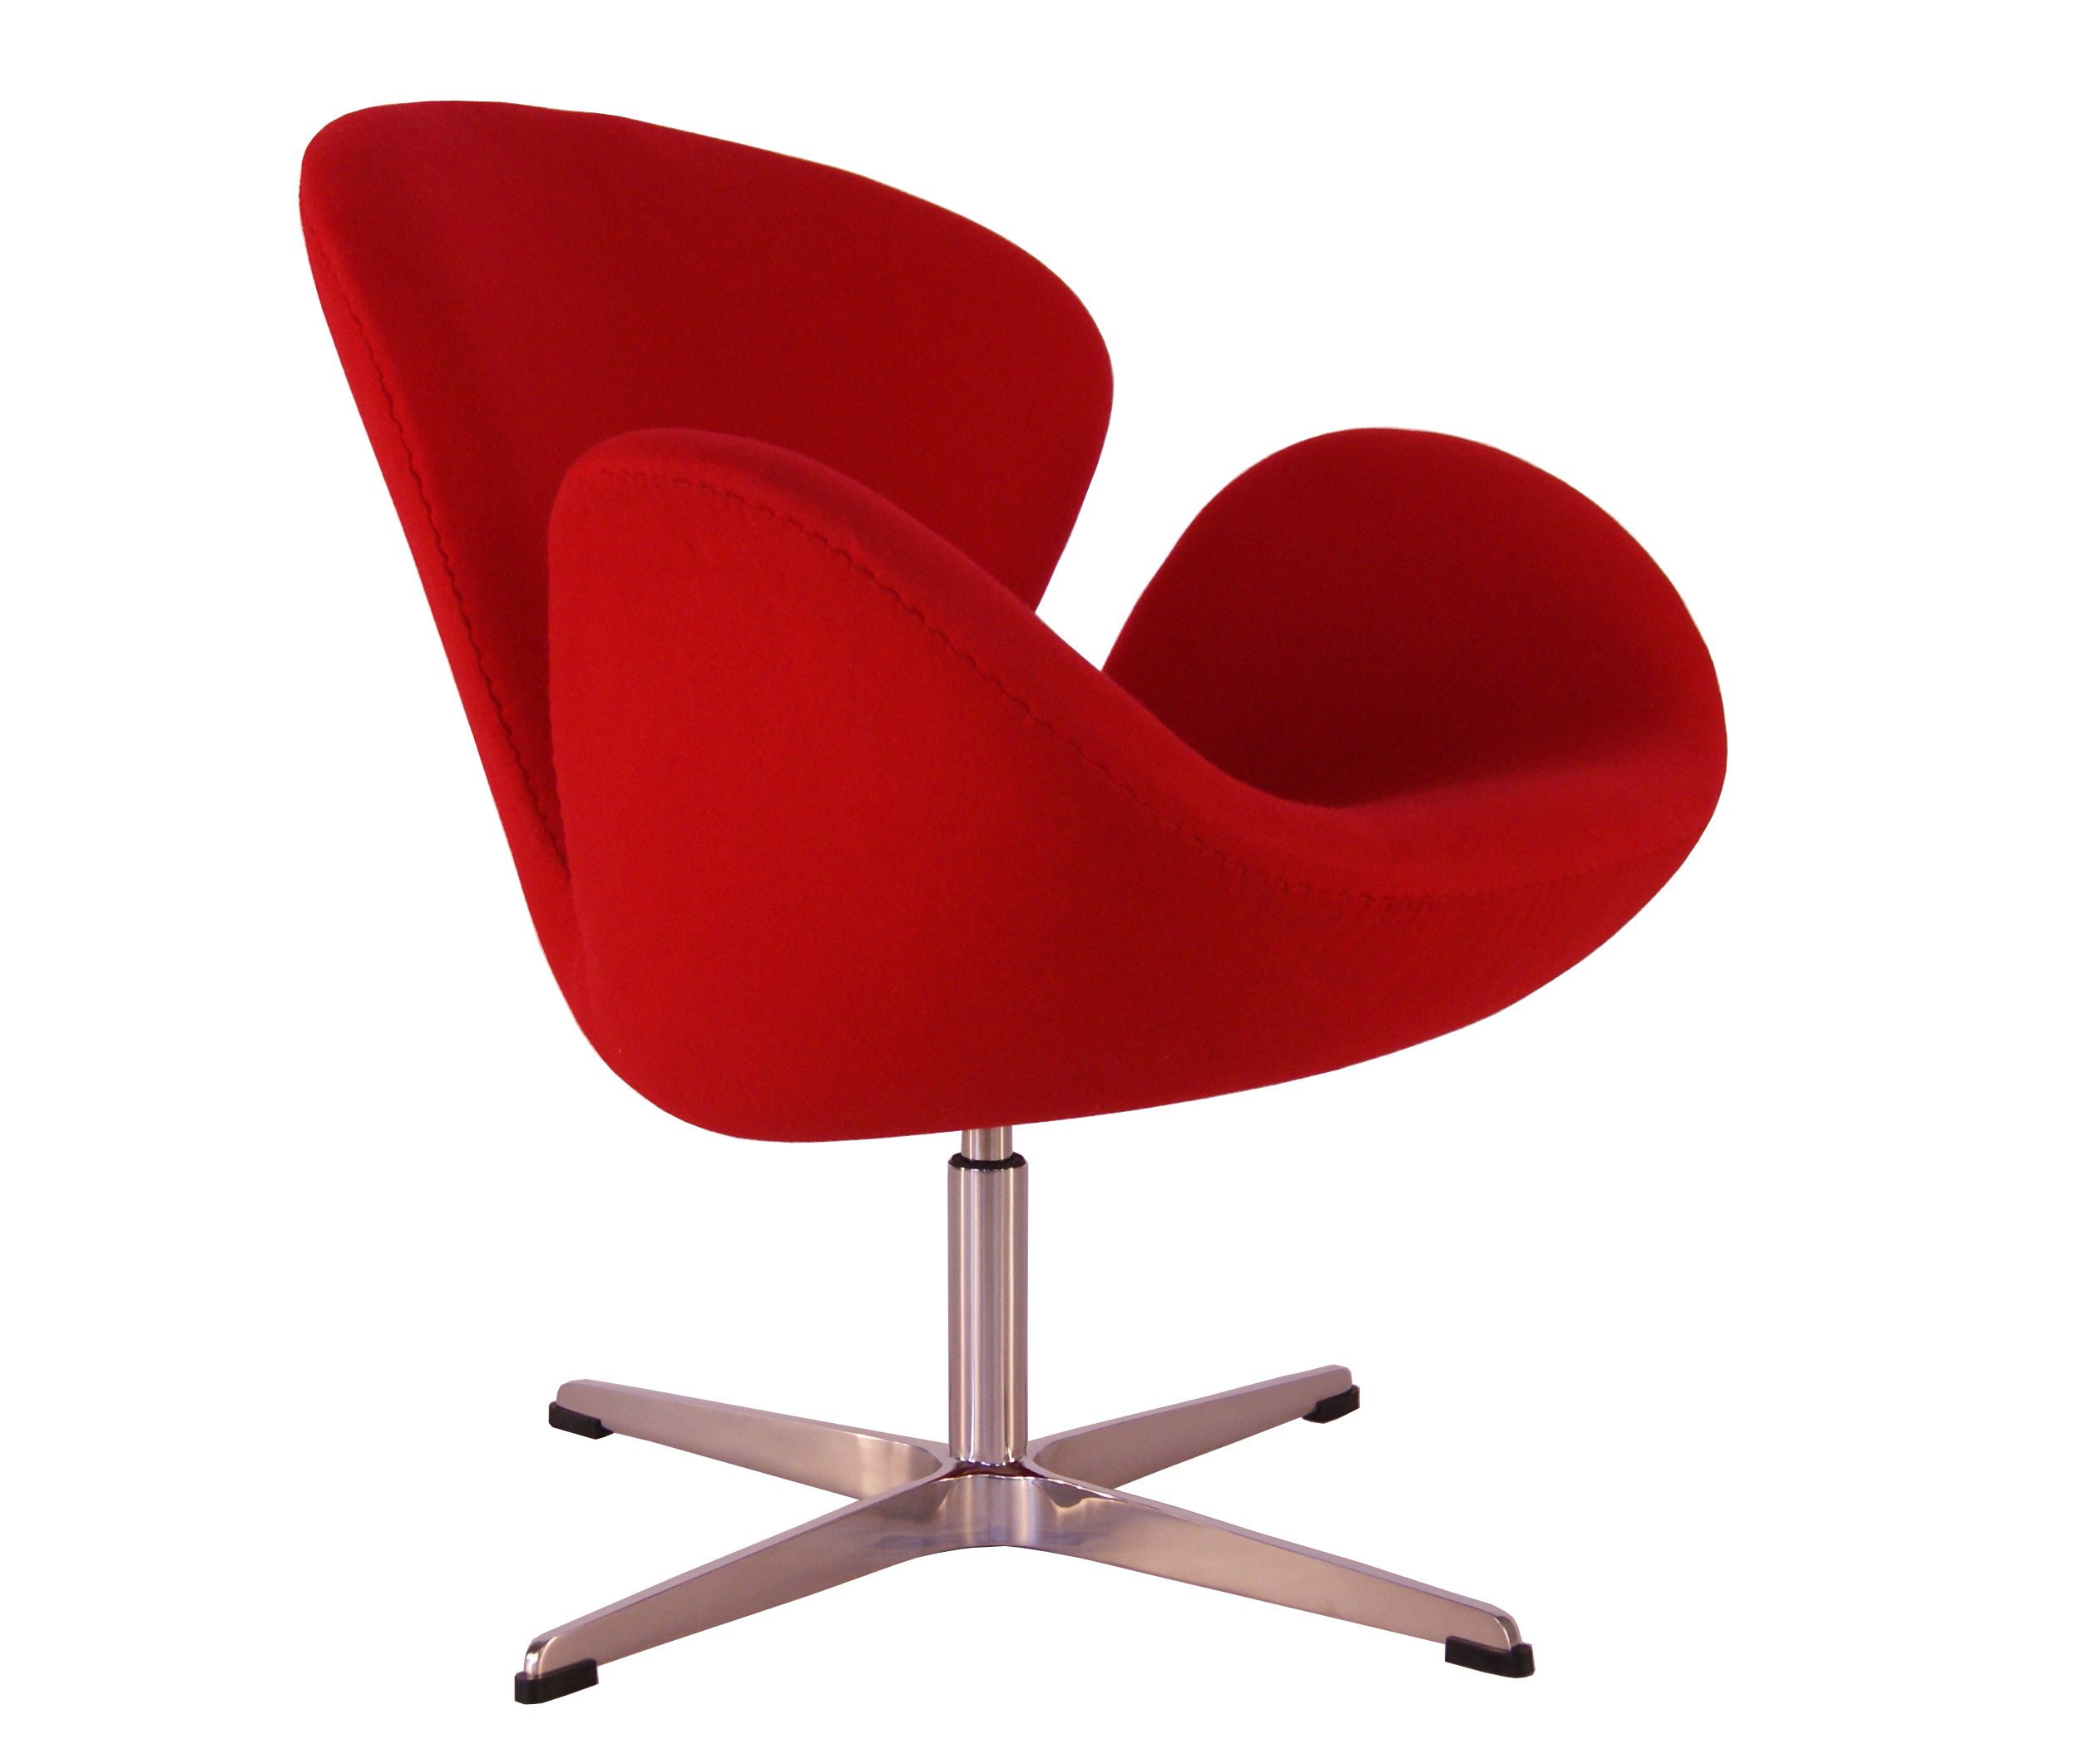 Chaise design rouge - Fauteuil design rouge ...